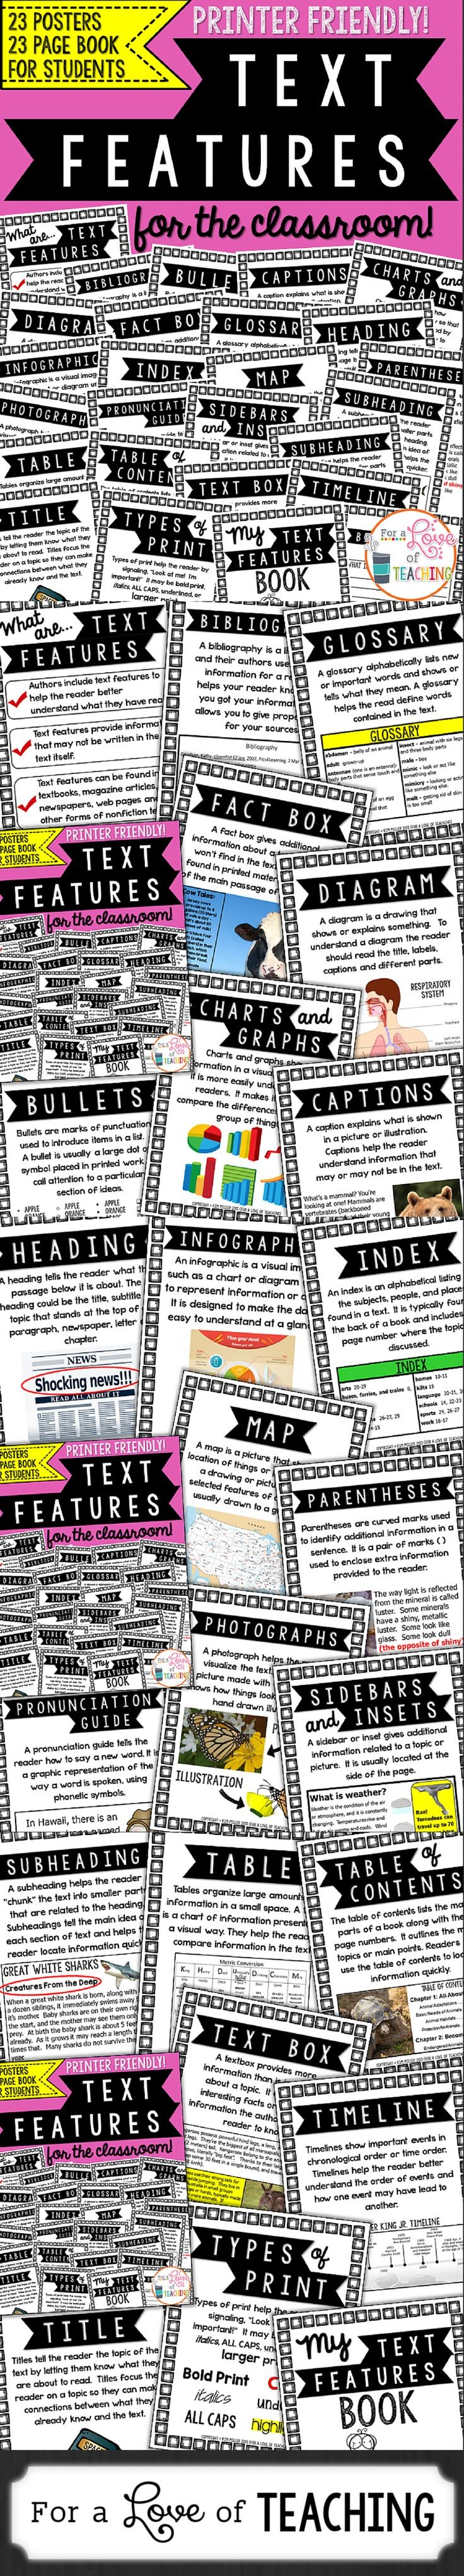 Text Features for the Classroom: 23 Non-Fiction Te...